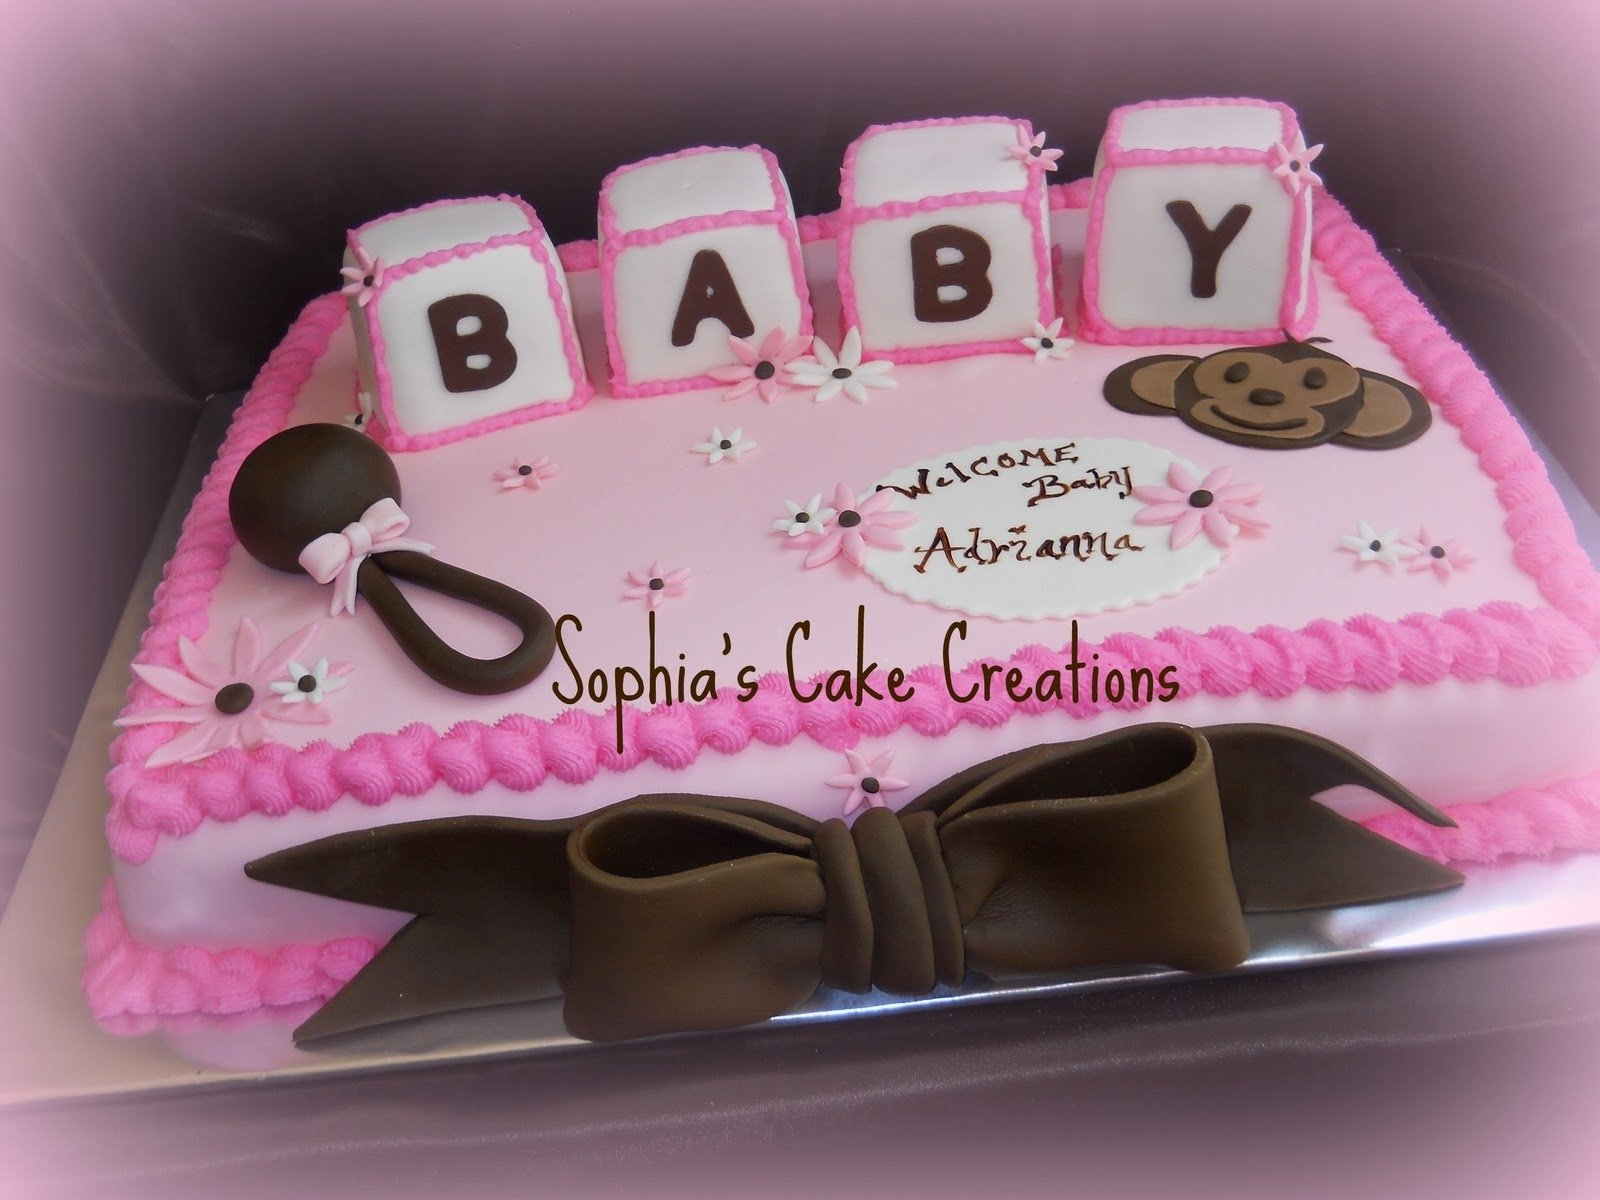 10 Trendy Pink And Brown Baby Shower Ideas living room decorating ideas baby shower cake ideas pink and brown